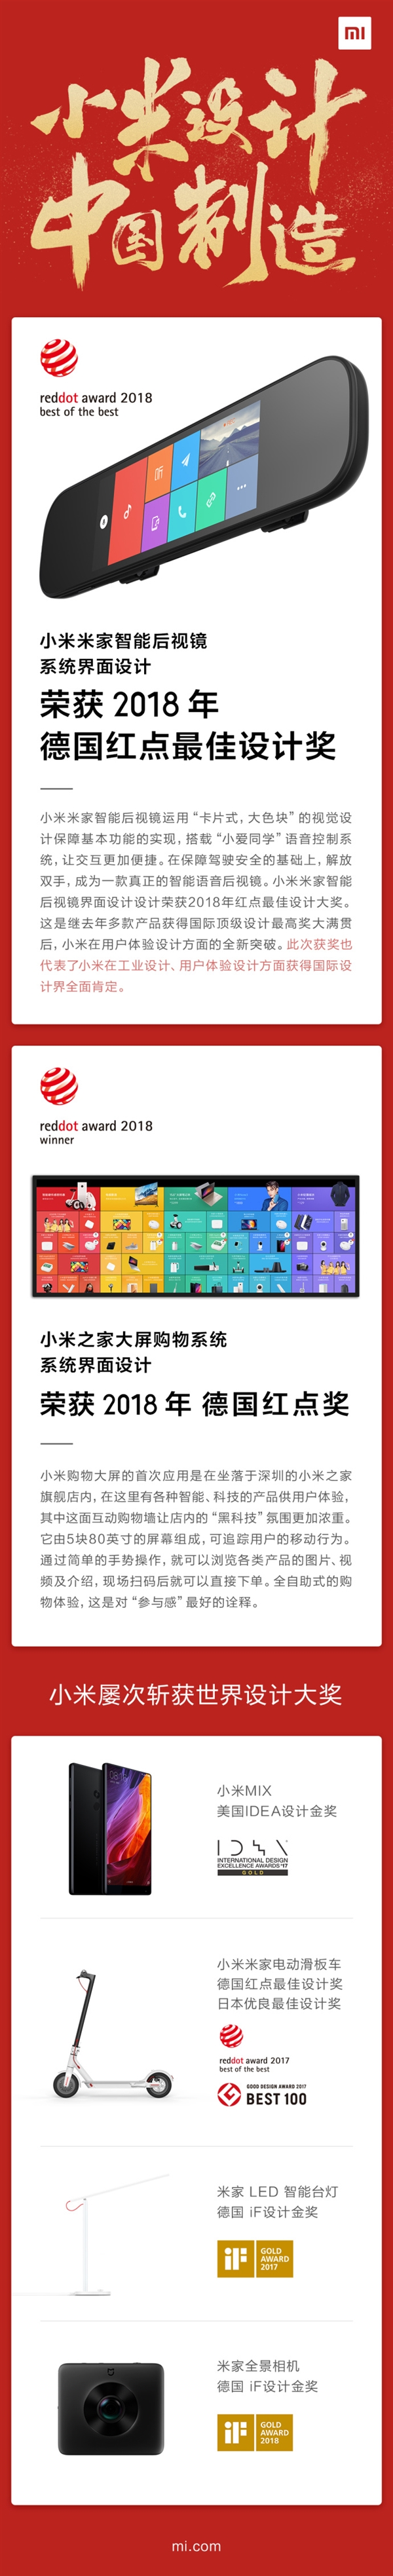 System interface like Xiaomi Mijia smart rearview mirror won the red dot best design award